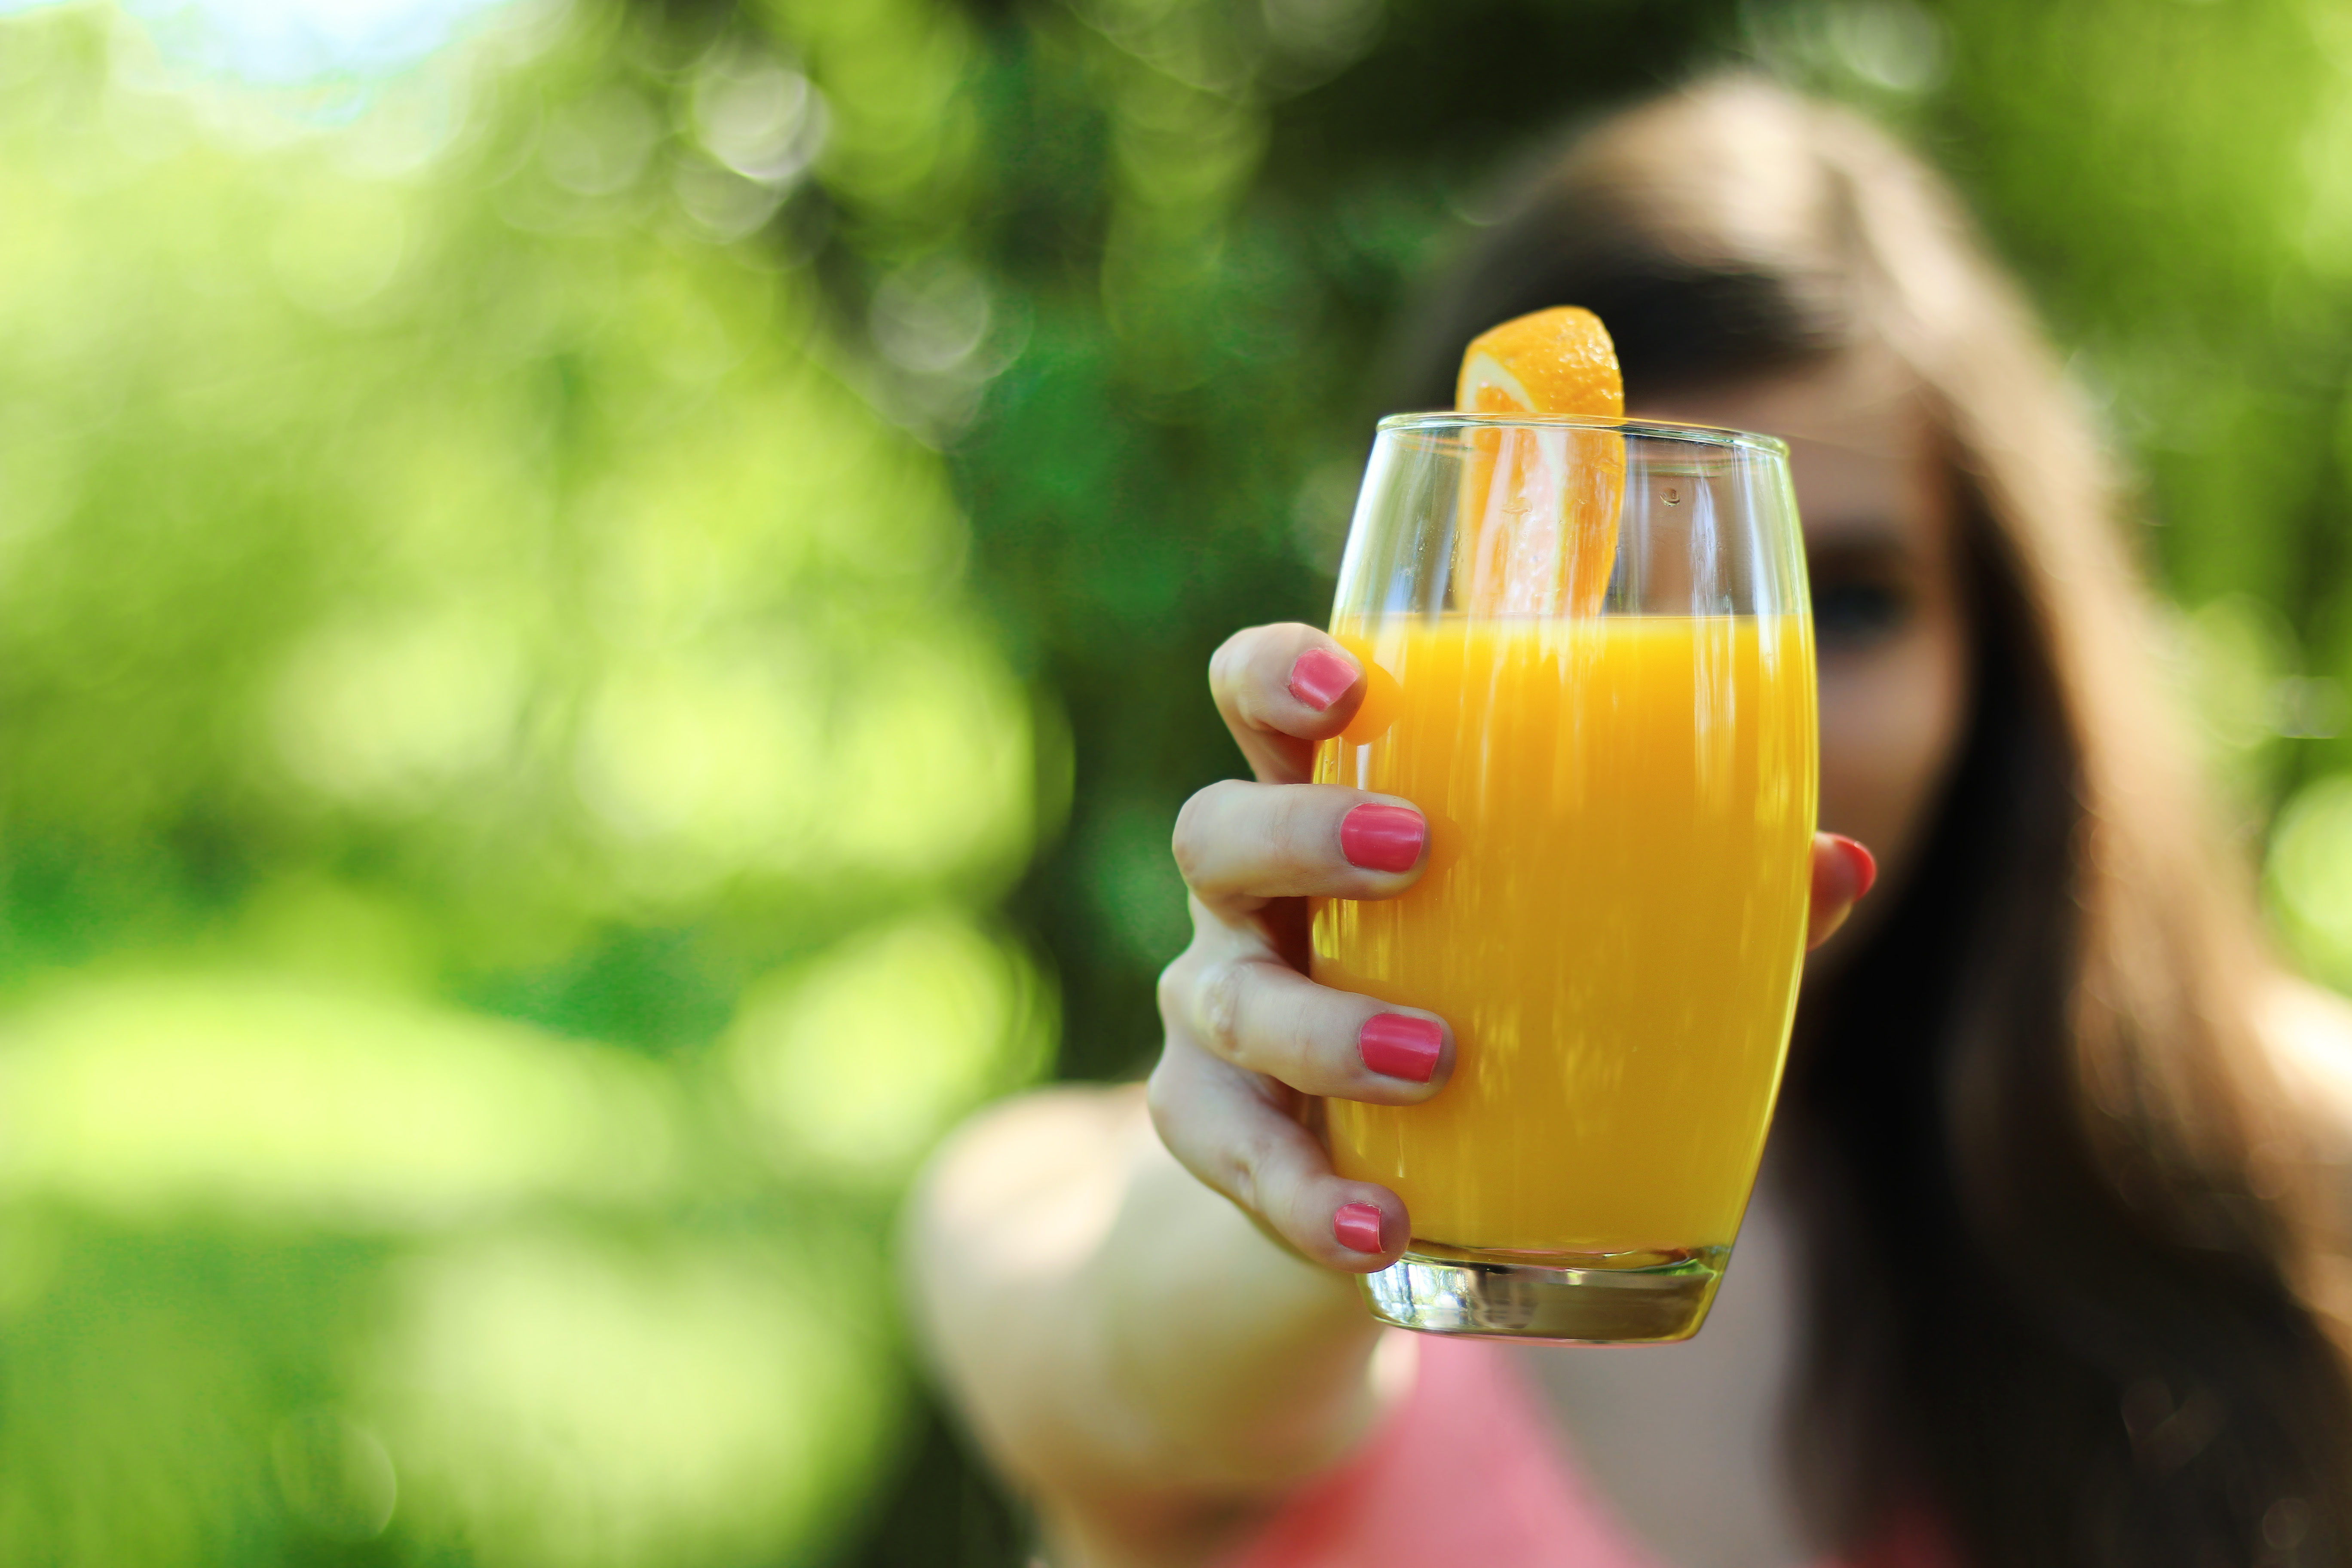 girl-morning-breakfast-orange-juice.jpg (5472×3648)